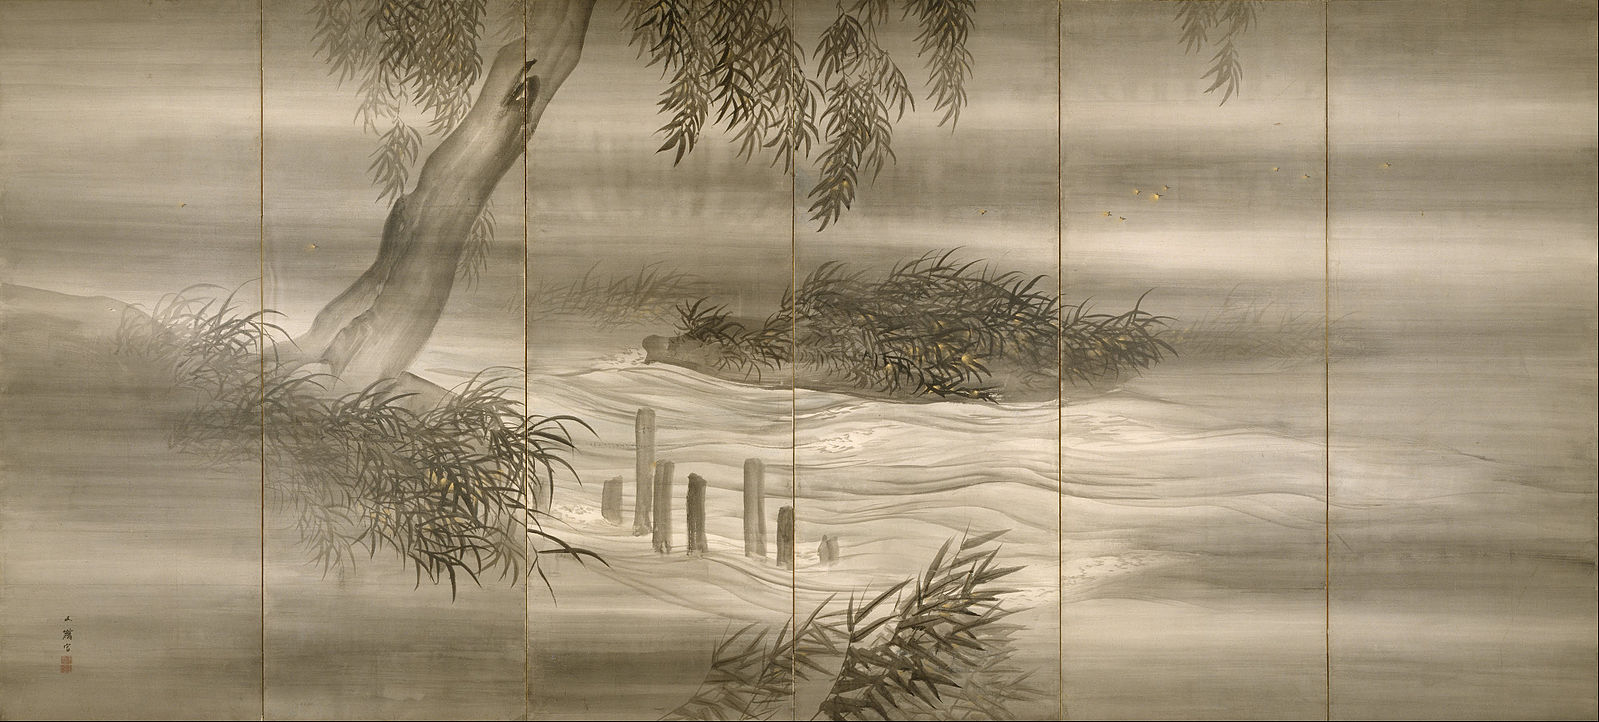 Artist: Shiokawa Bunrin Title: River Landscape with Fireflies